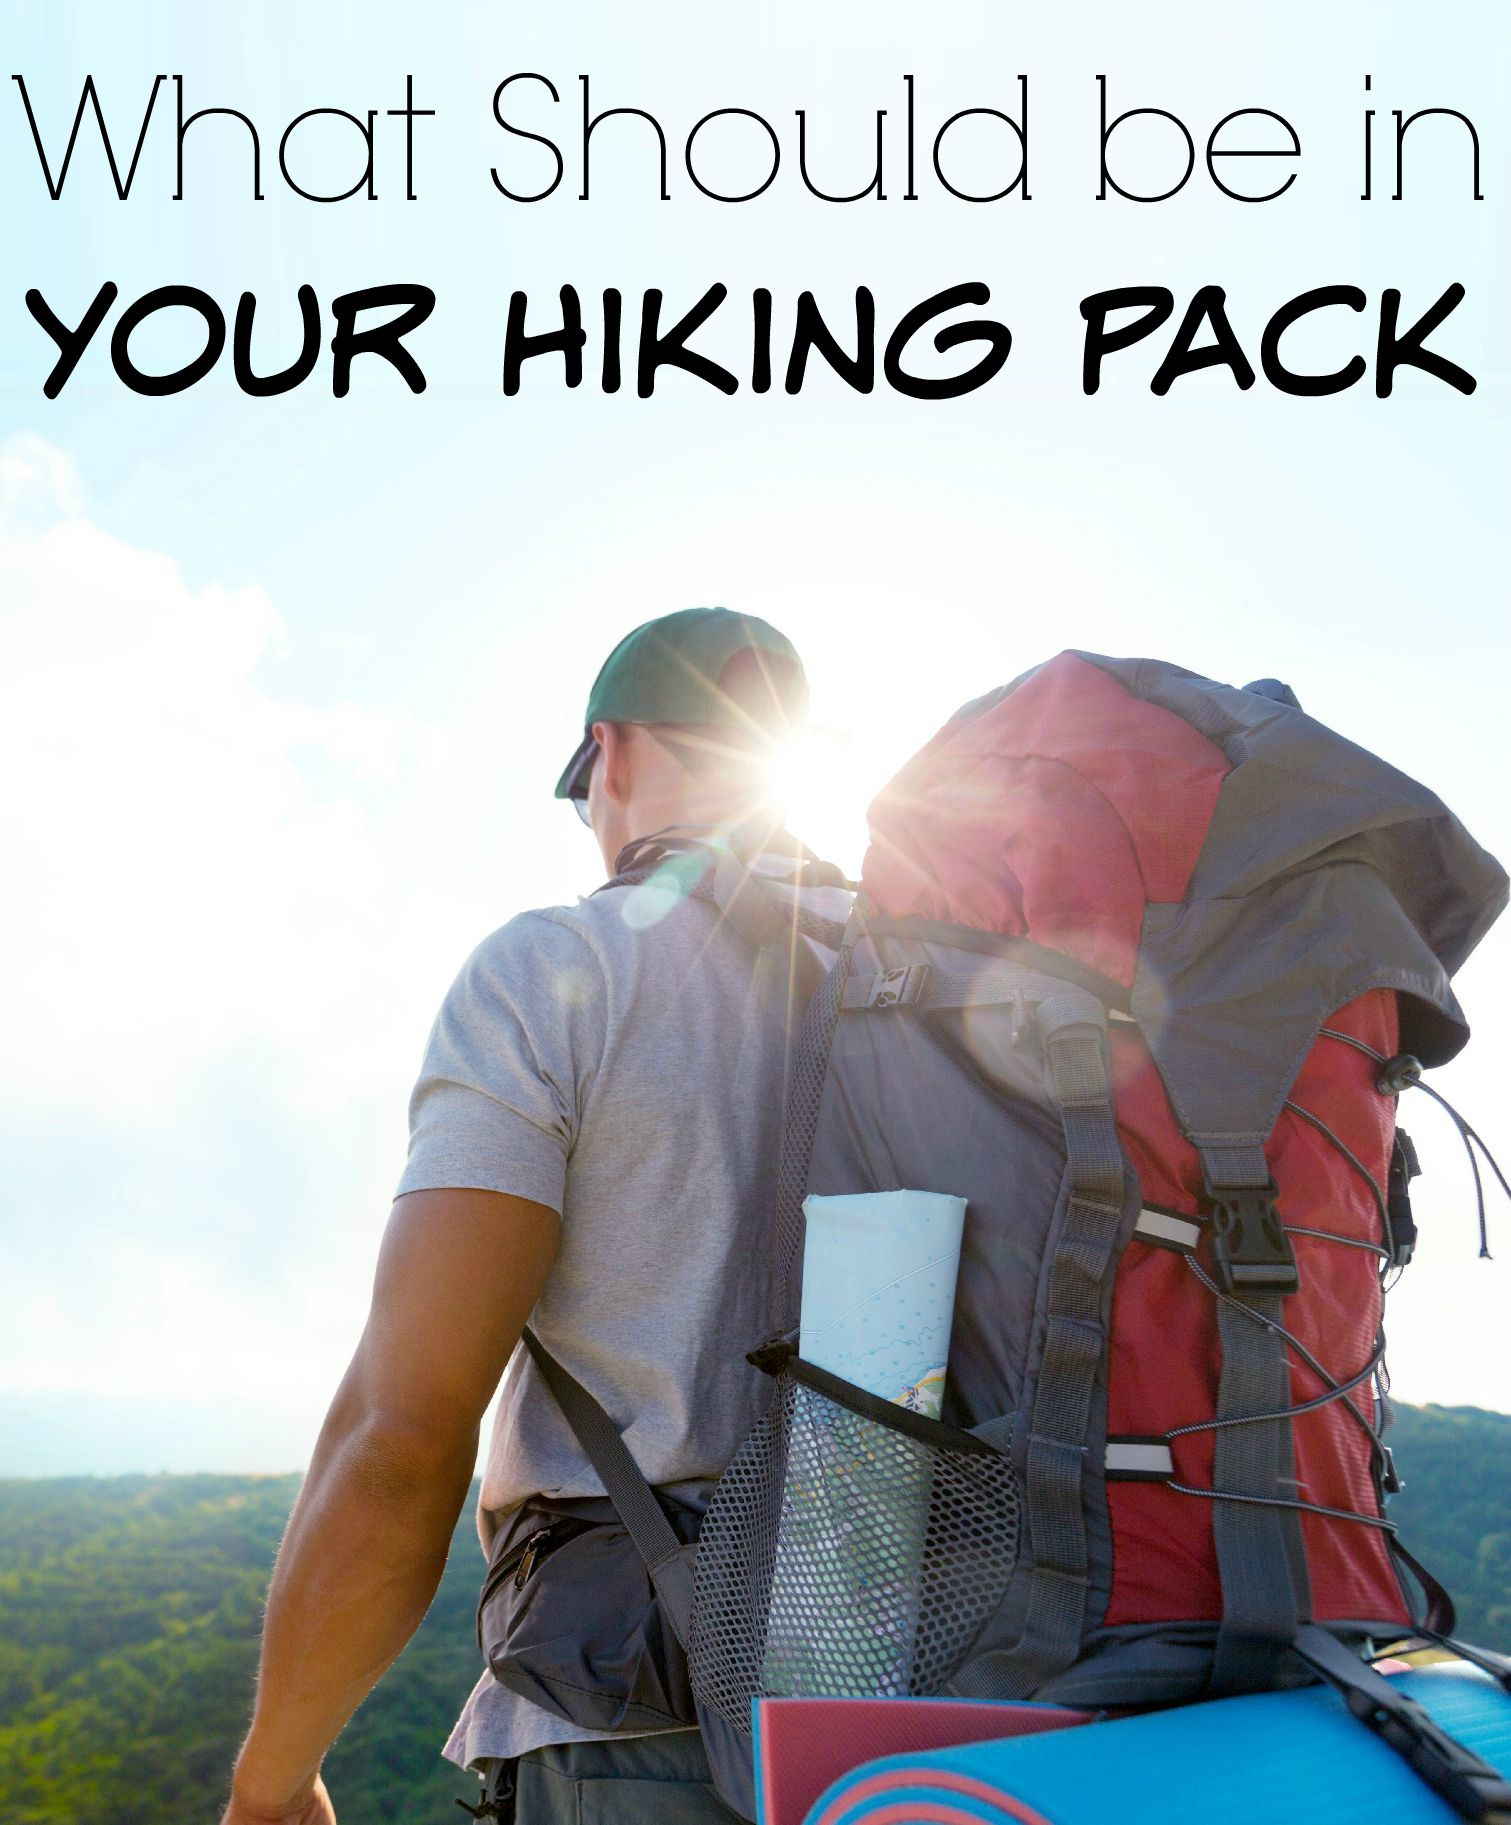 What Should be in Your Hiking Pack